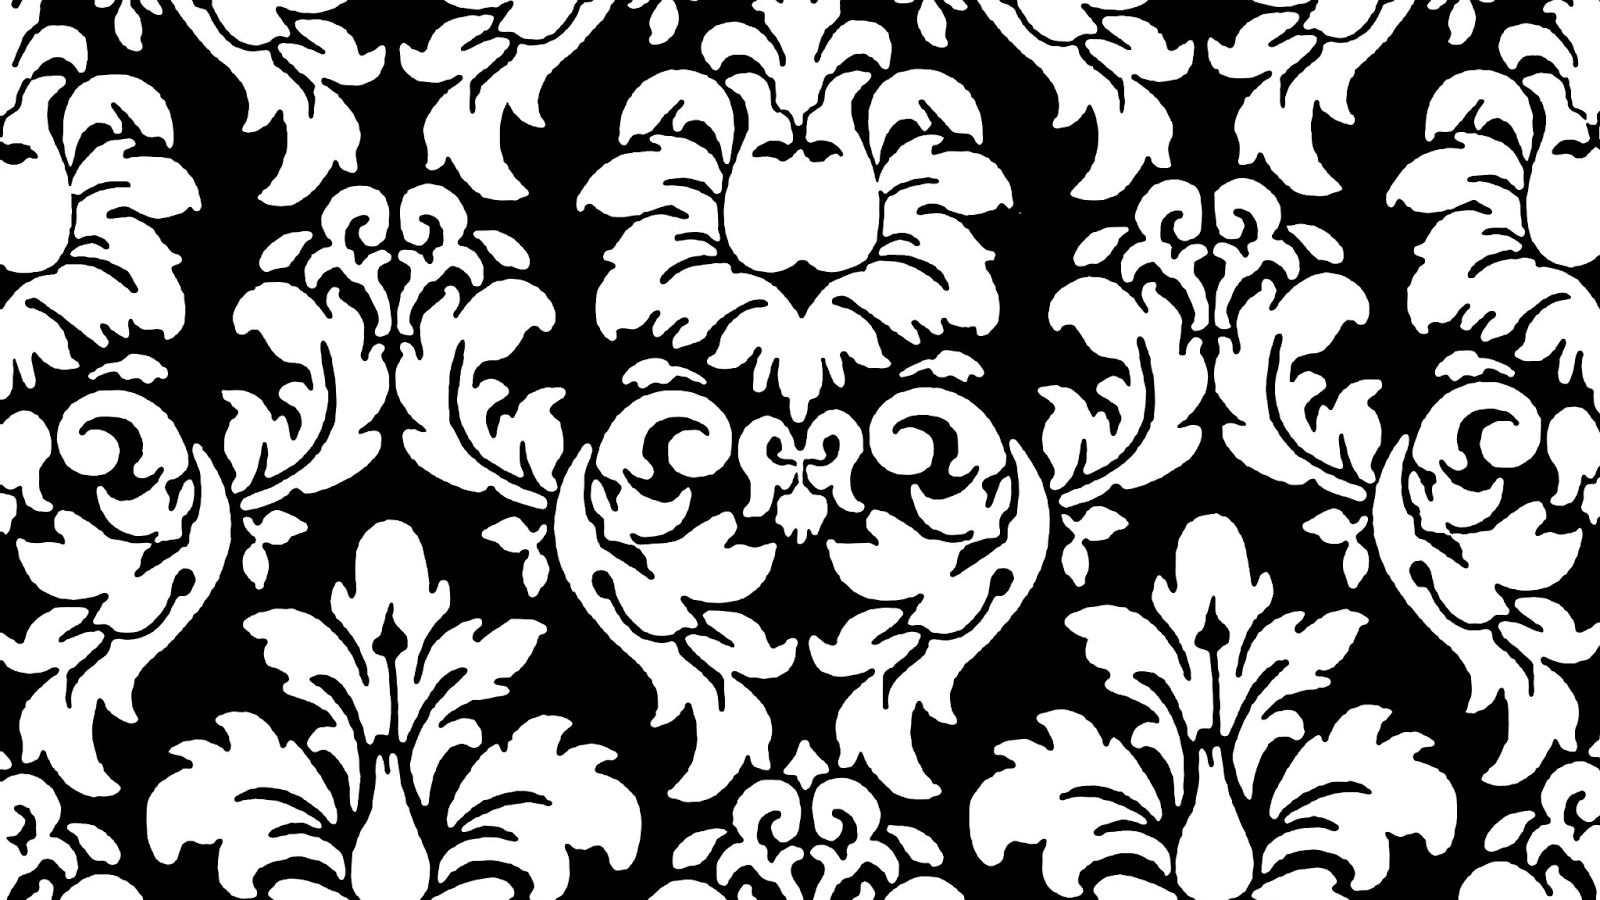 Free Download Damask Wallpaper Floral Damask View All Wallpapers